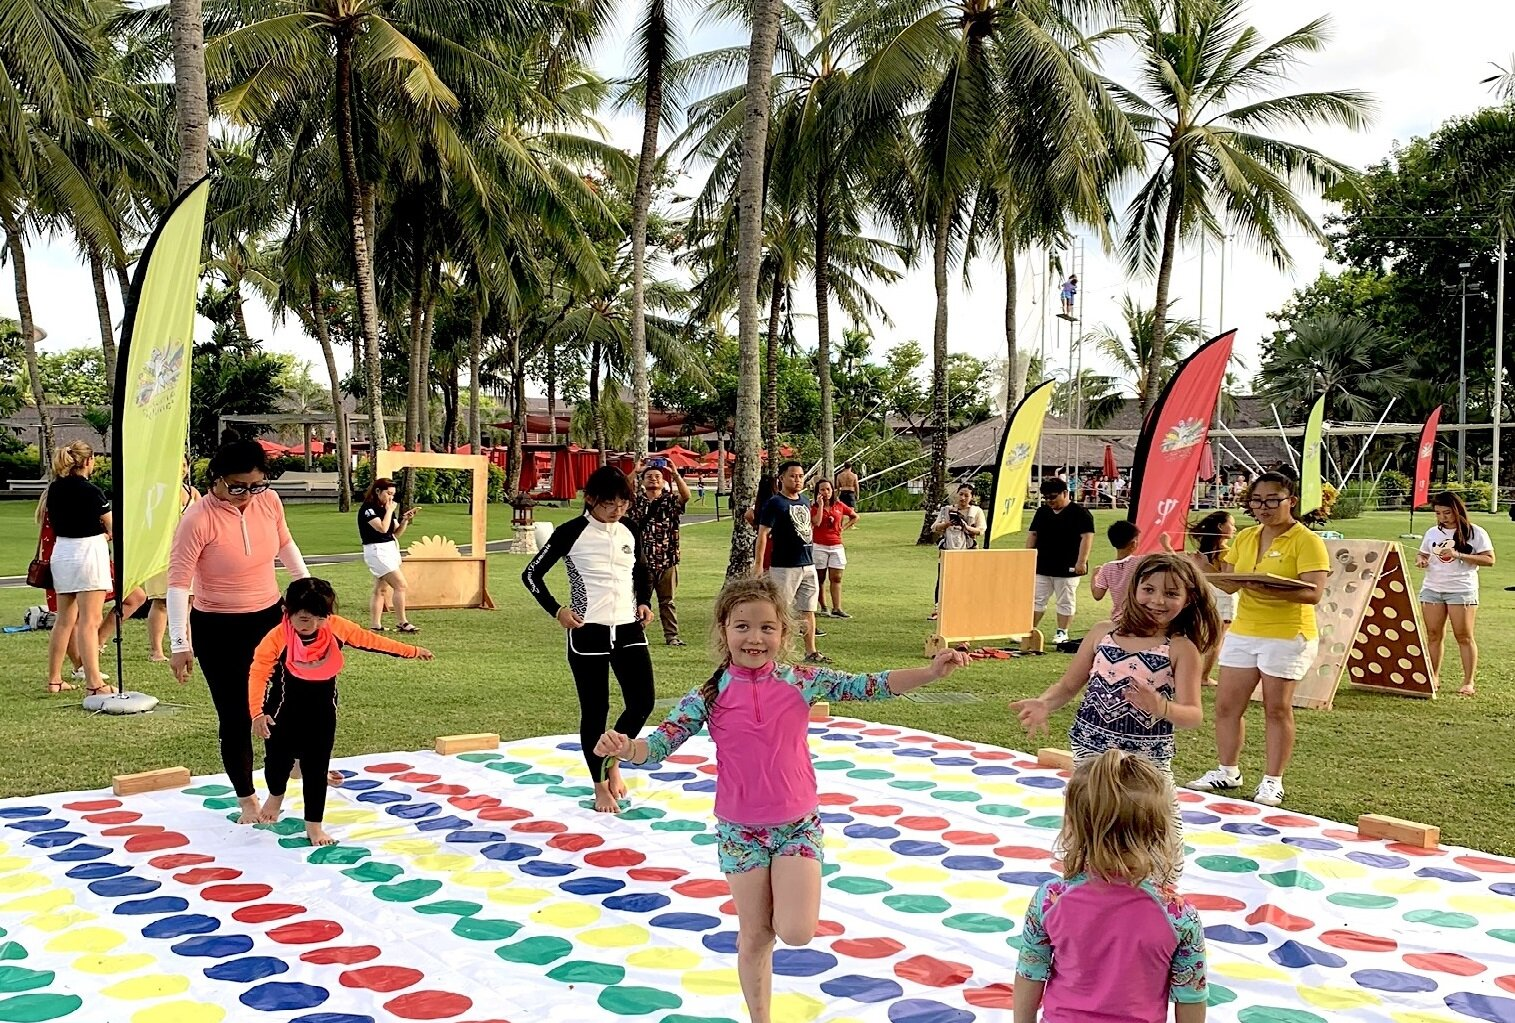 Amazing Family launch all around Asia!   Our  Amazing Family program  with activities for the whole family is now available at all  Asia sun resorts !  Water slides, tie dye activities, face painting, soccer, twister... and so much more!